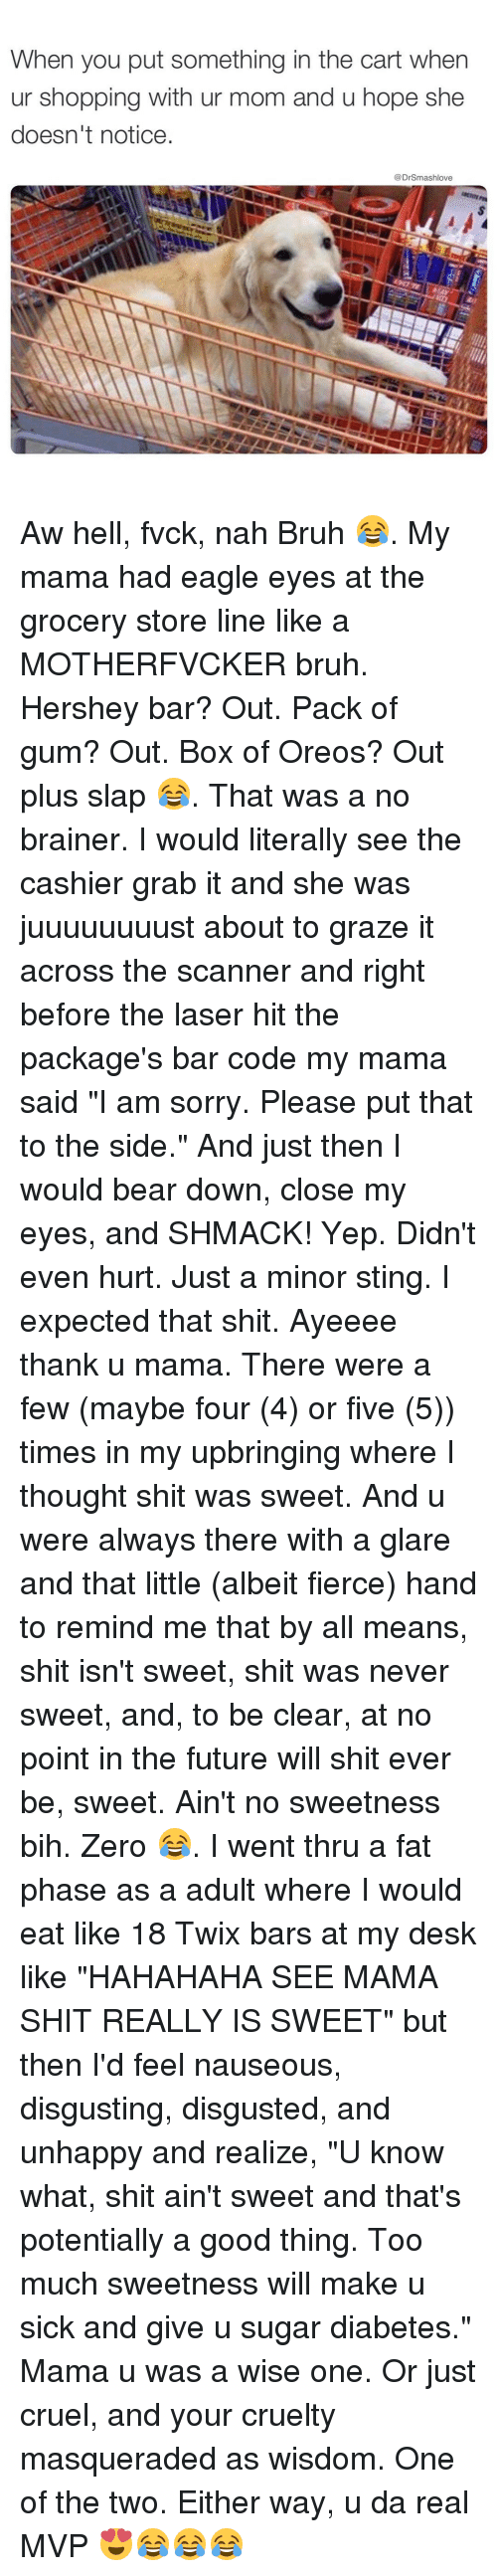 "Nah Bruh: When you put something in the cart when  ur shopping with ur mom and u hope she  doesn't notice.  @Dr Smashlove Aw hell, fvck, nah Bruh 😂. My mama had eagle eyes at the grocery store line like a MOTHERFVCKER bruh. Hershey bar? Out. Pack of gum? Out. Box of Oreos? Out plus slap 😂. That was a no brainer. I would literally see the cashier grab it and she was juuuuuuuust about to graze it across the scanner and right before the laser hit the package's bar code my mama said ""I am sorry. Please put that to the side."" And just then I would bear down, close my eyes, and SHMACK! Yep. Didn't even hurt. Just a minor sting. I expected that shit. Ayeeee thank u mama. There were a few (maybe four (4) or five (5)) times in my upbringing where I thought shit was sweet. And u were always there with a glare and that little (albeit fierce) hand to remind me that by all means, shit isn't sweet, shit was never sweet, and, to be clear, at no point in the future will shit ever be, sweet. Ain't no sweetness bih. Zero 😂. I went thru a fat phase as a adult where I would eat like 18 Twix bars at my desk like ""HAHAHAHA SEE MAMA SHIT REALLY IS SWEET"" but then I'd feel nauseous, disgusting, disgusted, and unhappy and realize, ""U know what, shit ain't sweet and that's potentially a good thing. Too much sweetness will make u sick and give u sugar diabetes."" Mama u was a wise one. Or just cruel, and your cruelty masqueraded as wisdom. One of the two. Either way, u da real MVP 😍😂😂😂"